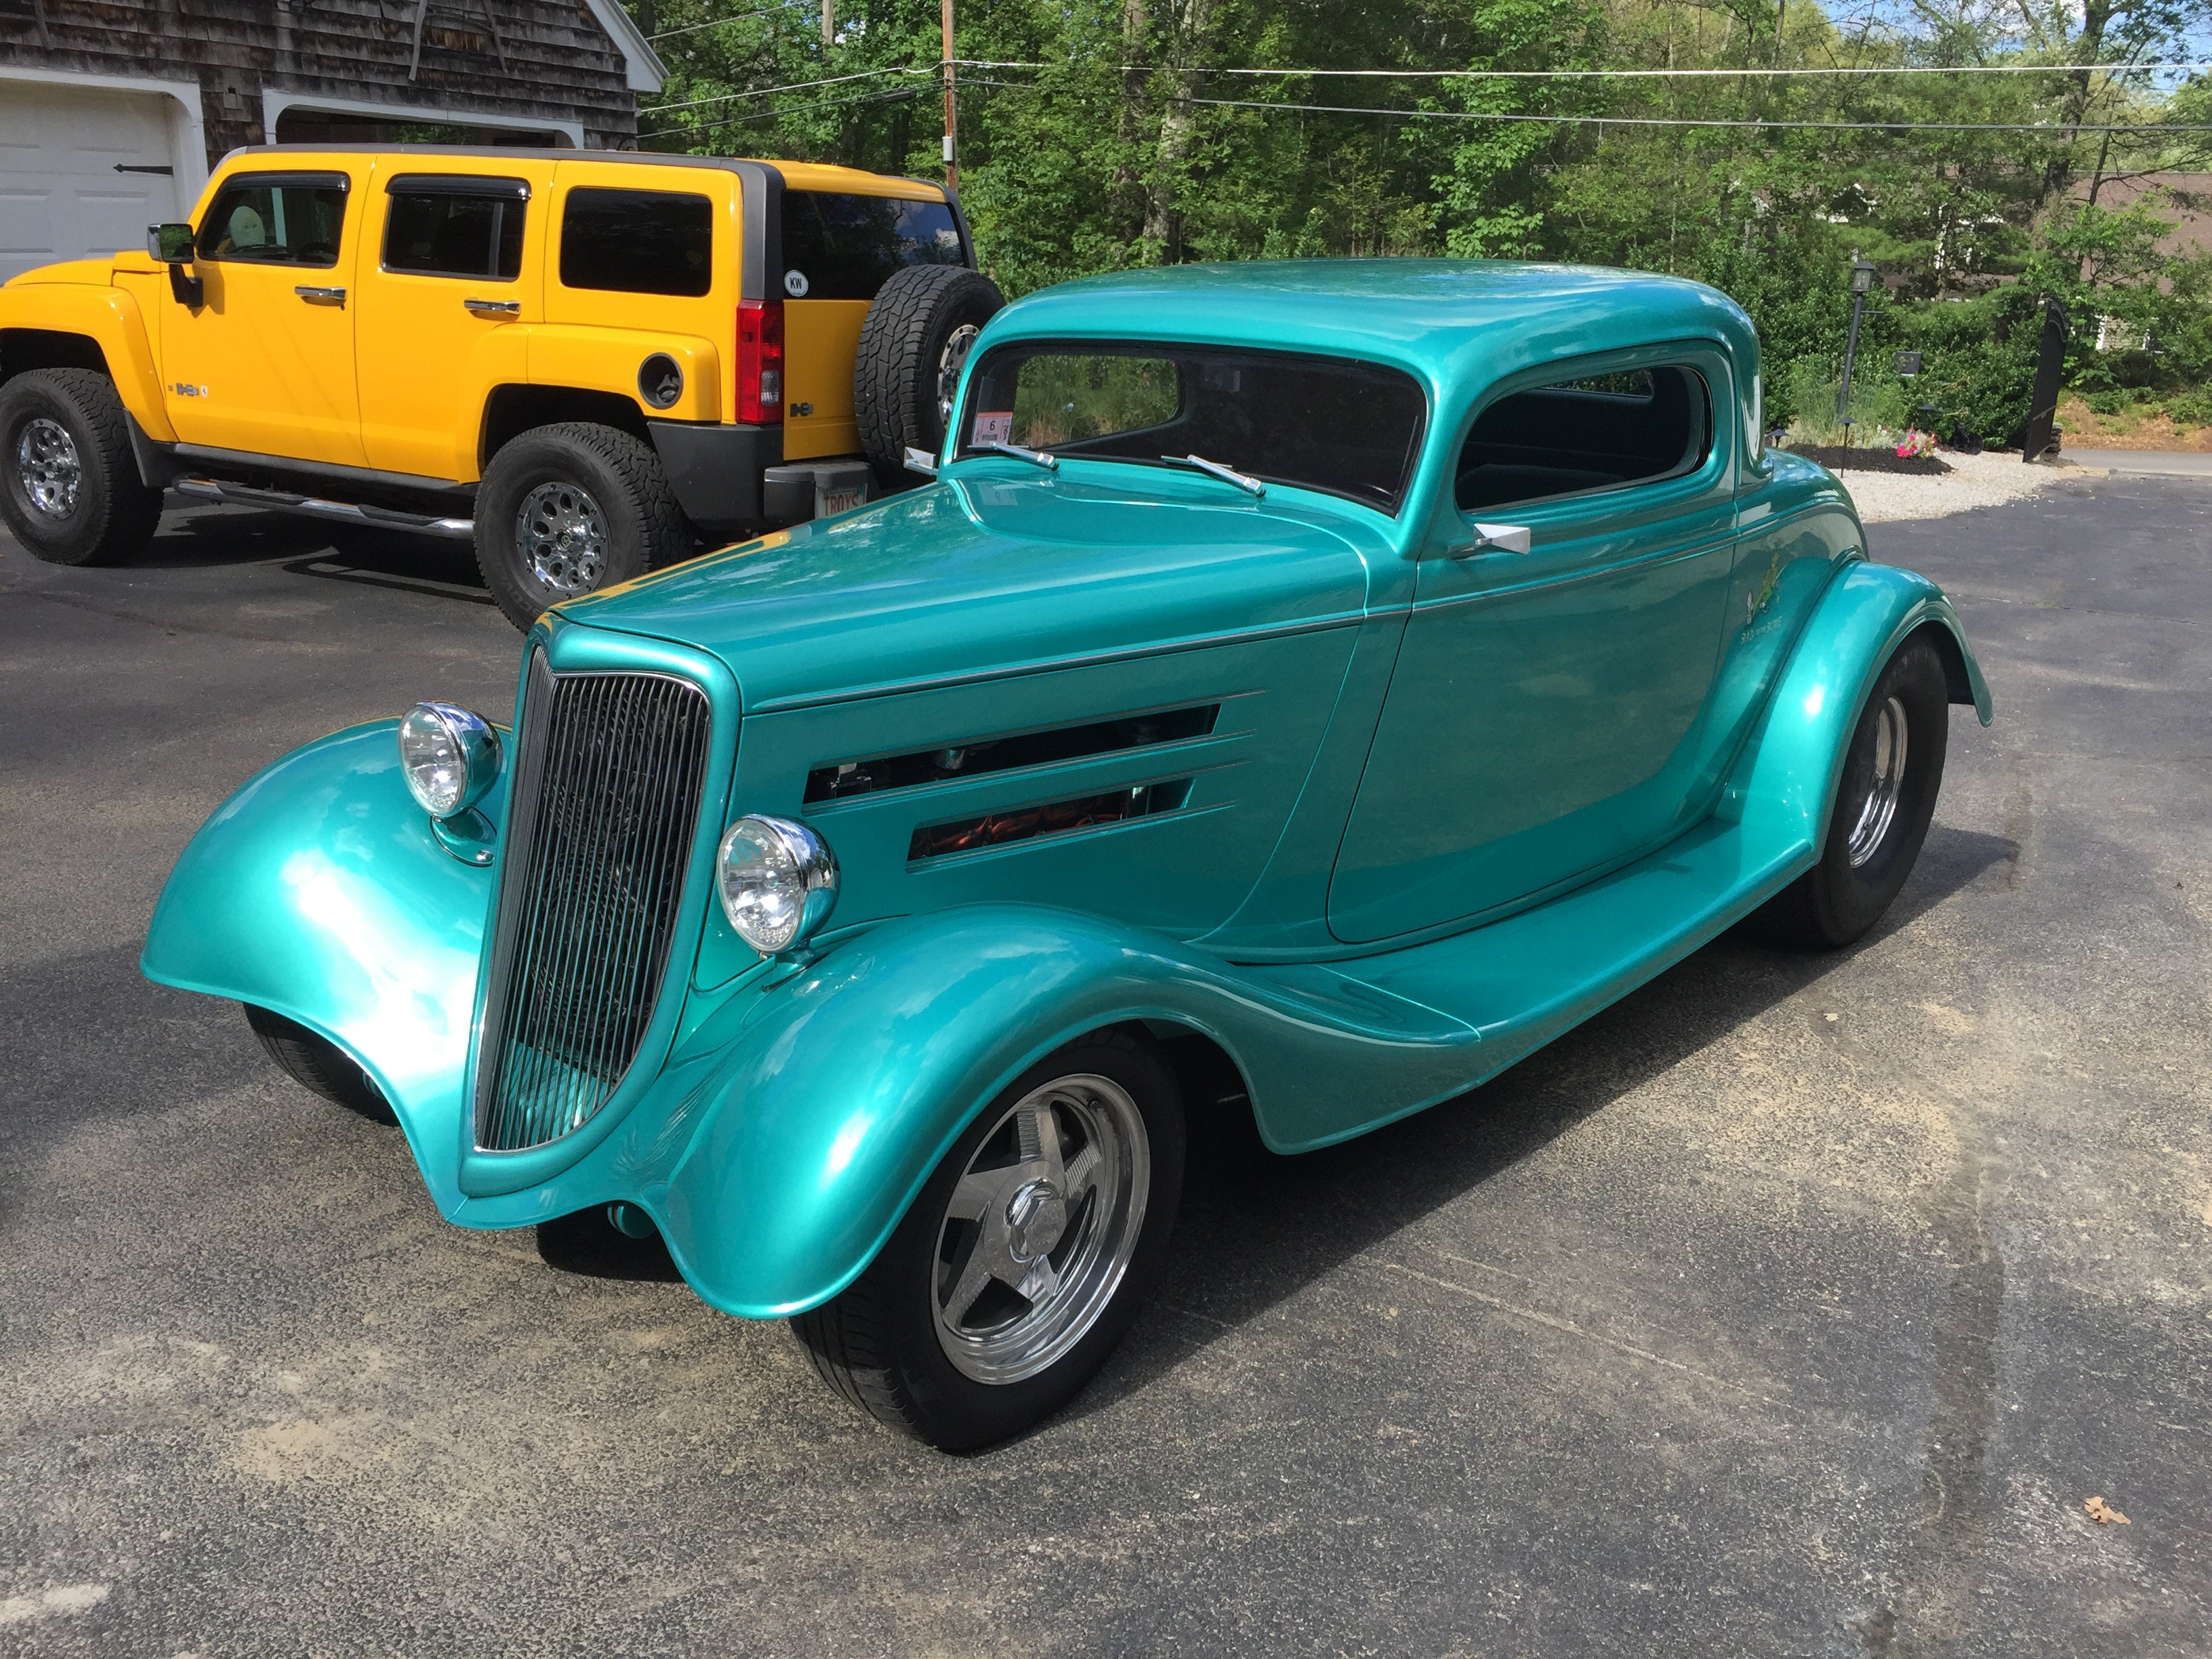 34 Ford 3 Window Coupe Fuel Injected Big Block Pro Street! - V-Twins ...